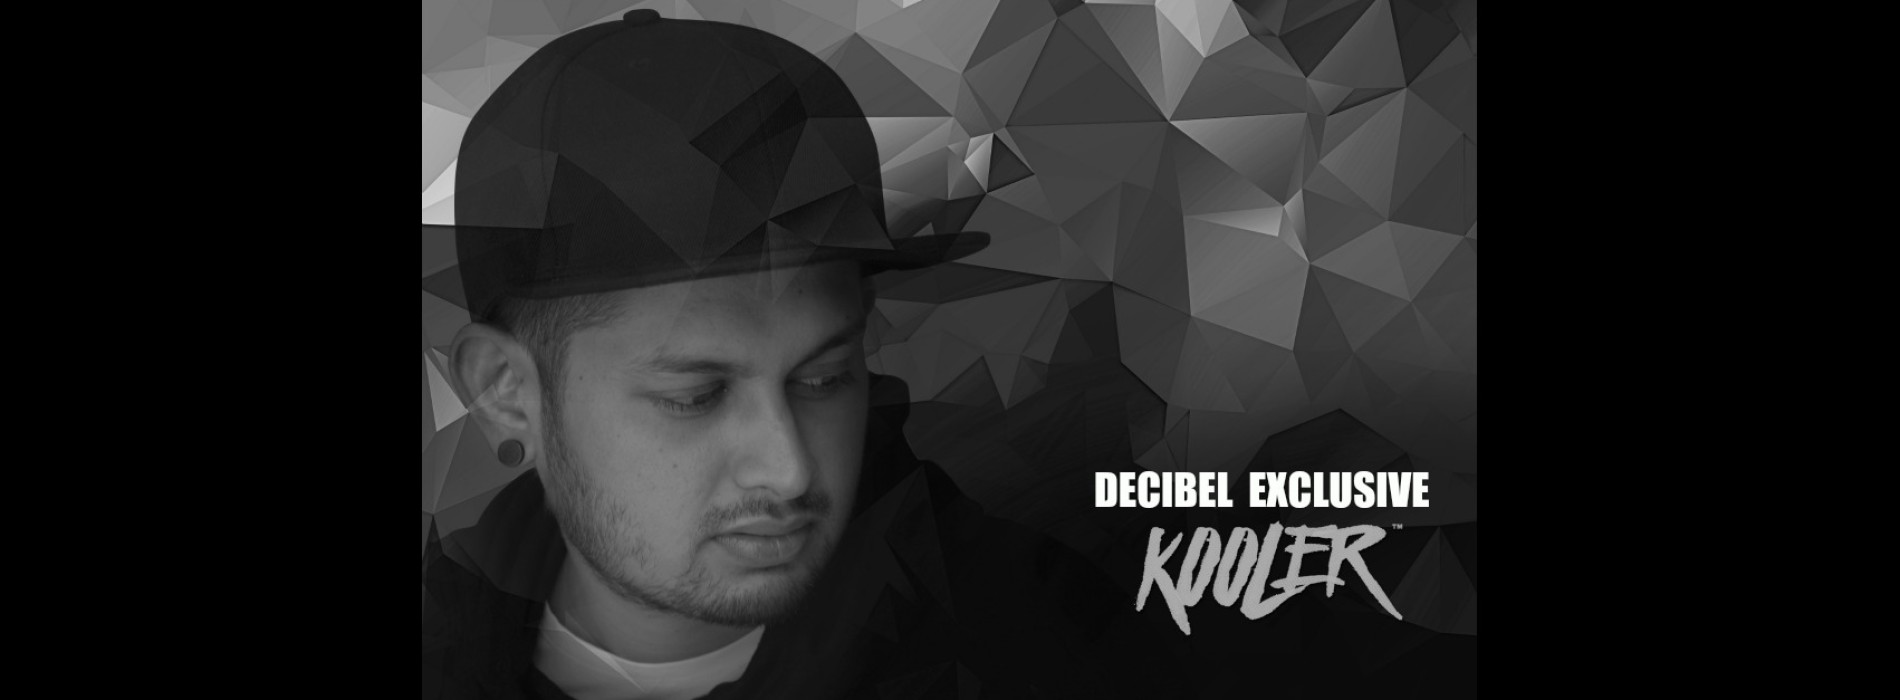 Decibel Exclusive : Dj Kooler